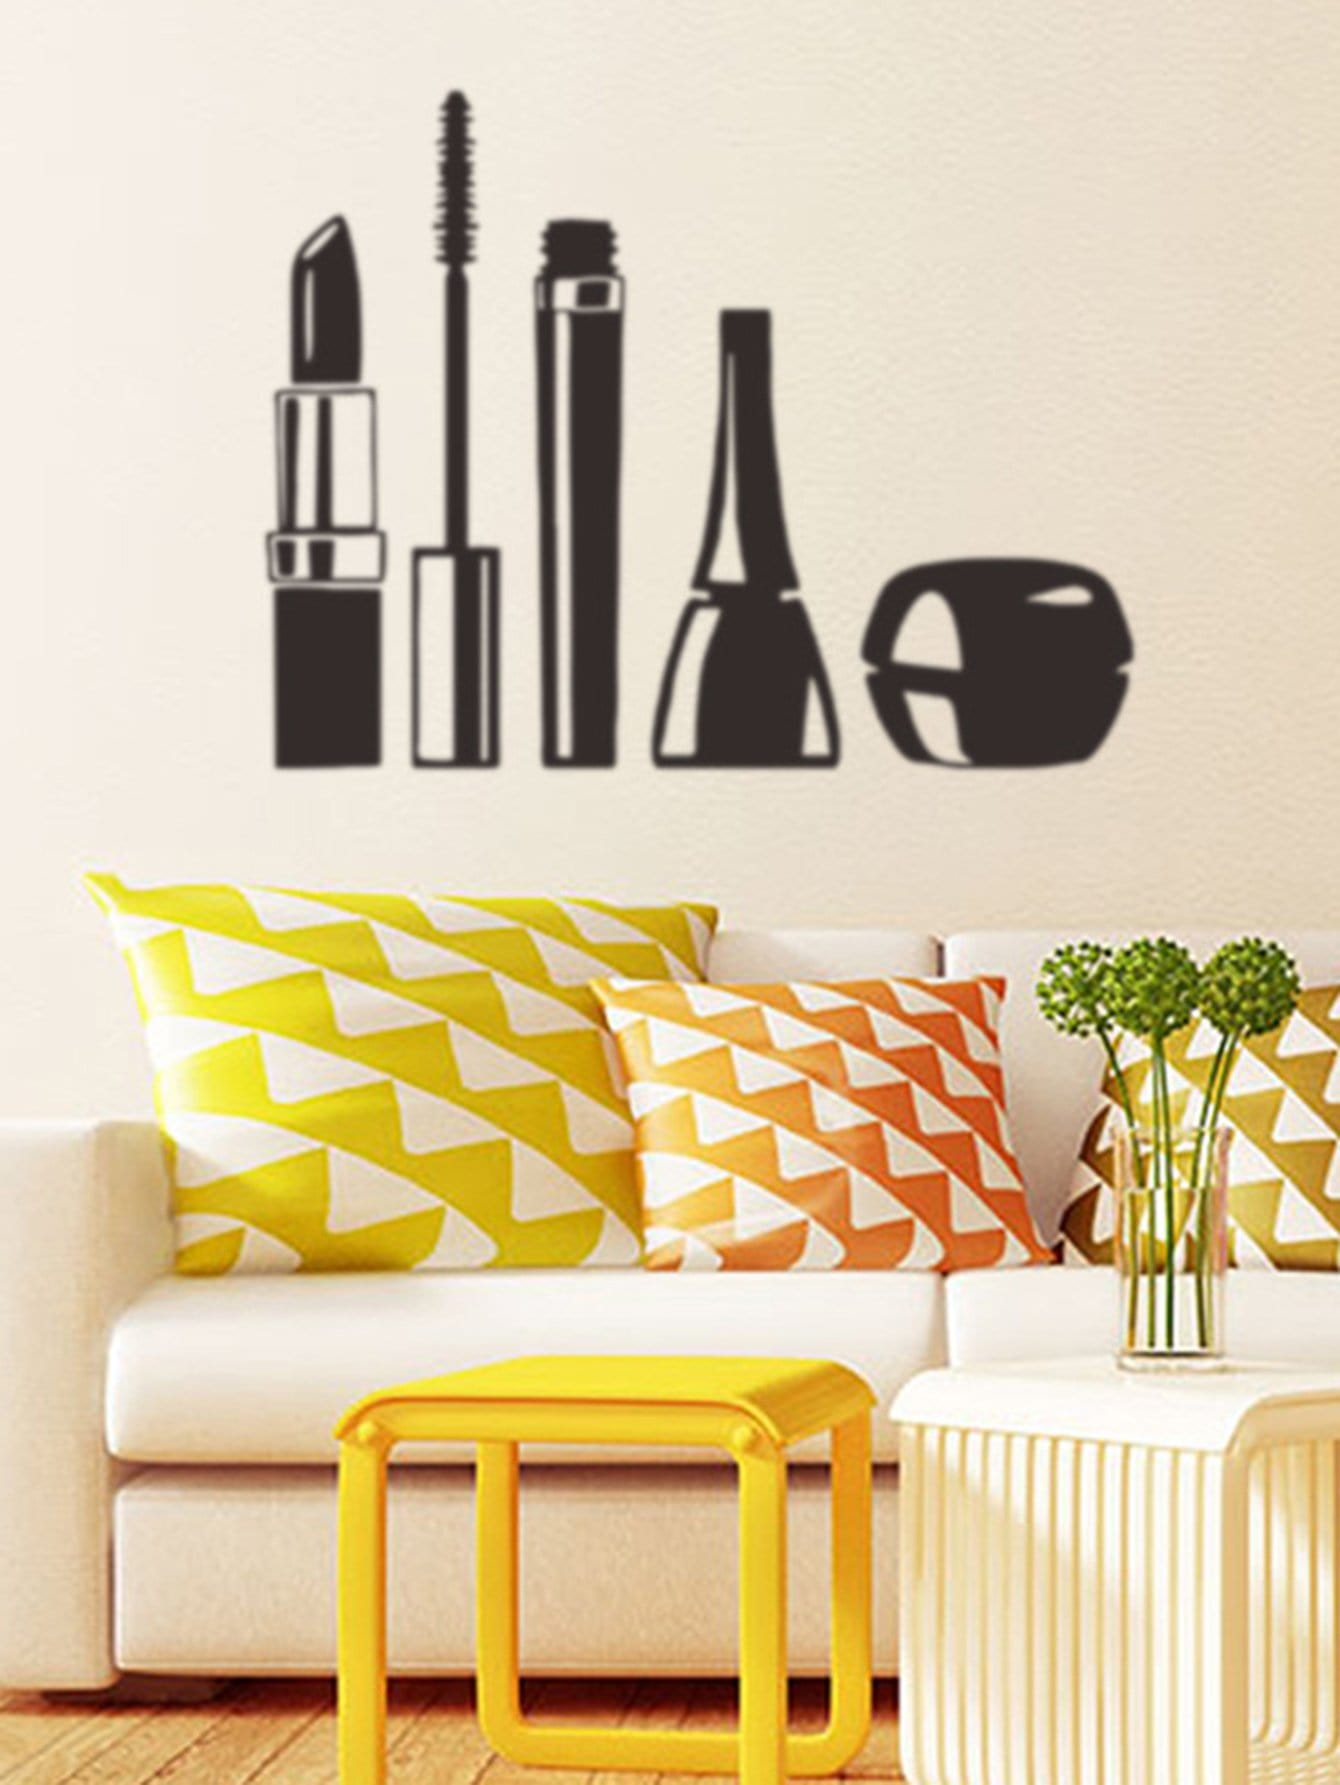 Фото Makeup Tool Wall Decal family wall quote removable wall stickers home decal art mural